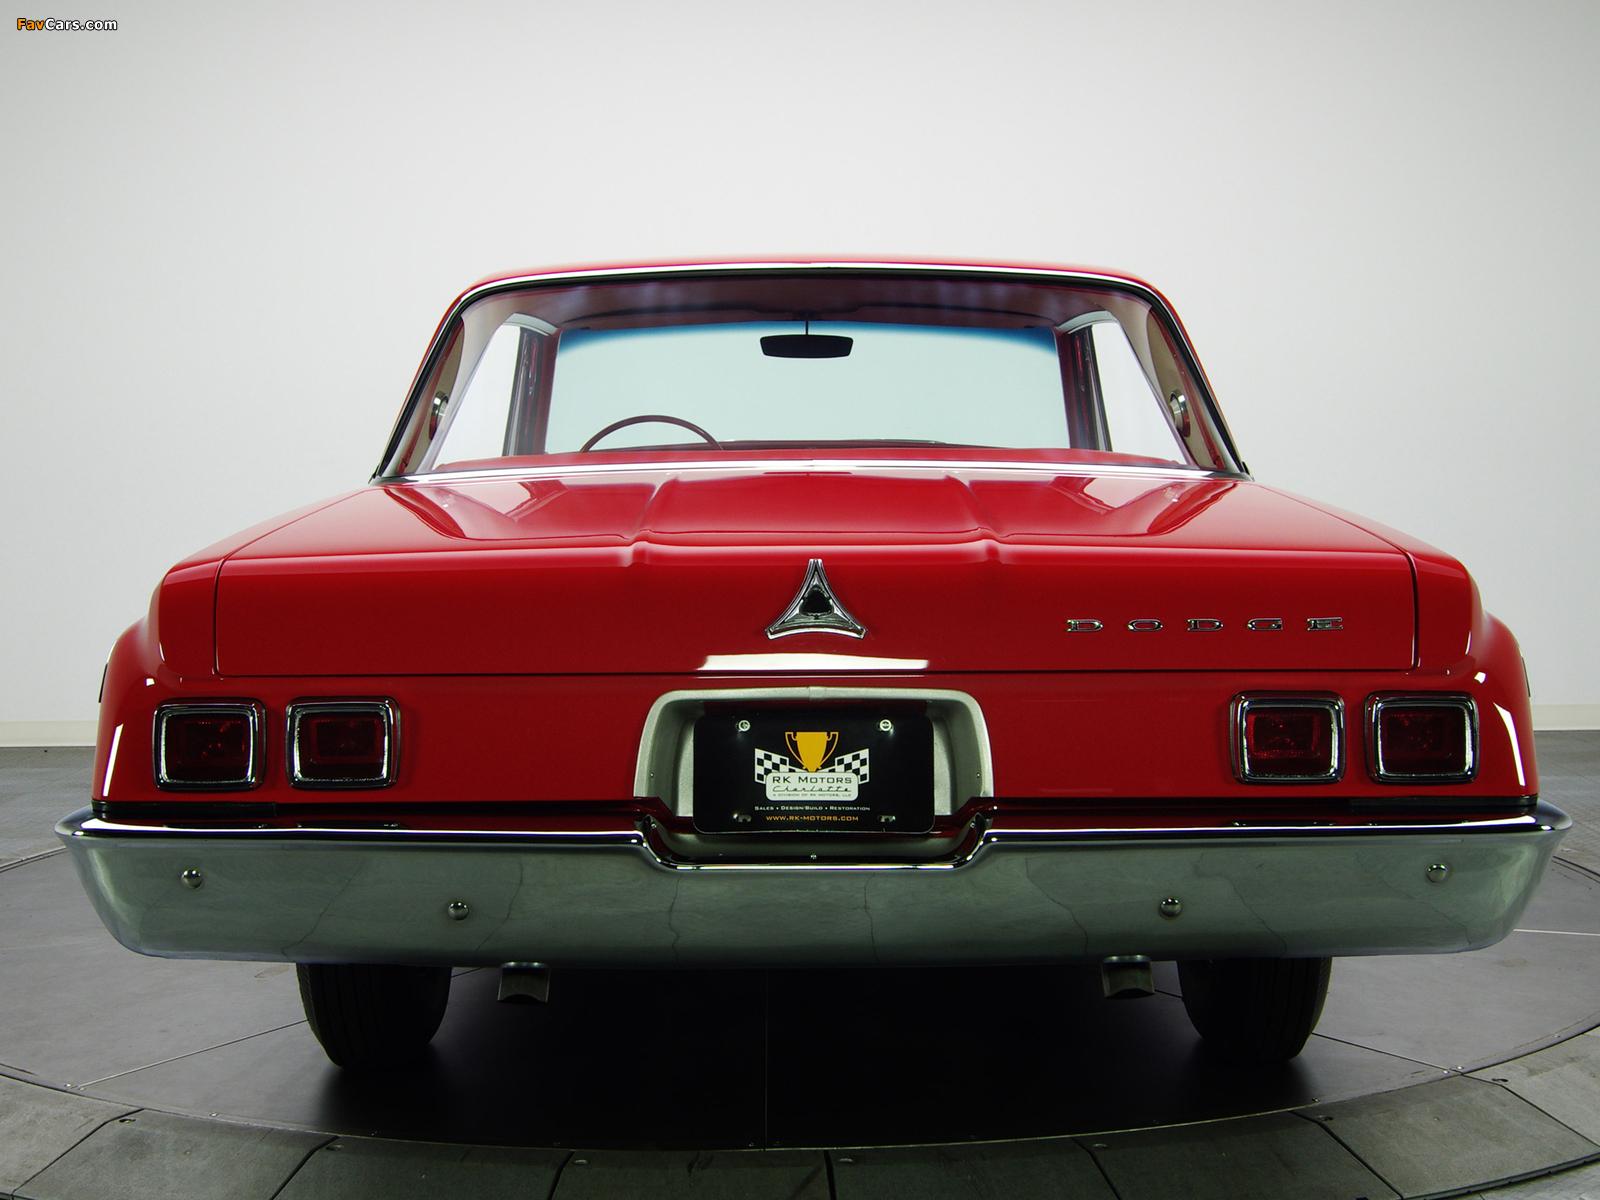 Images of Dodge 440 Street Wedge (622) 1964 (1600 x 1200)